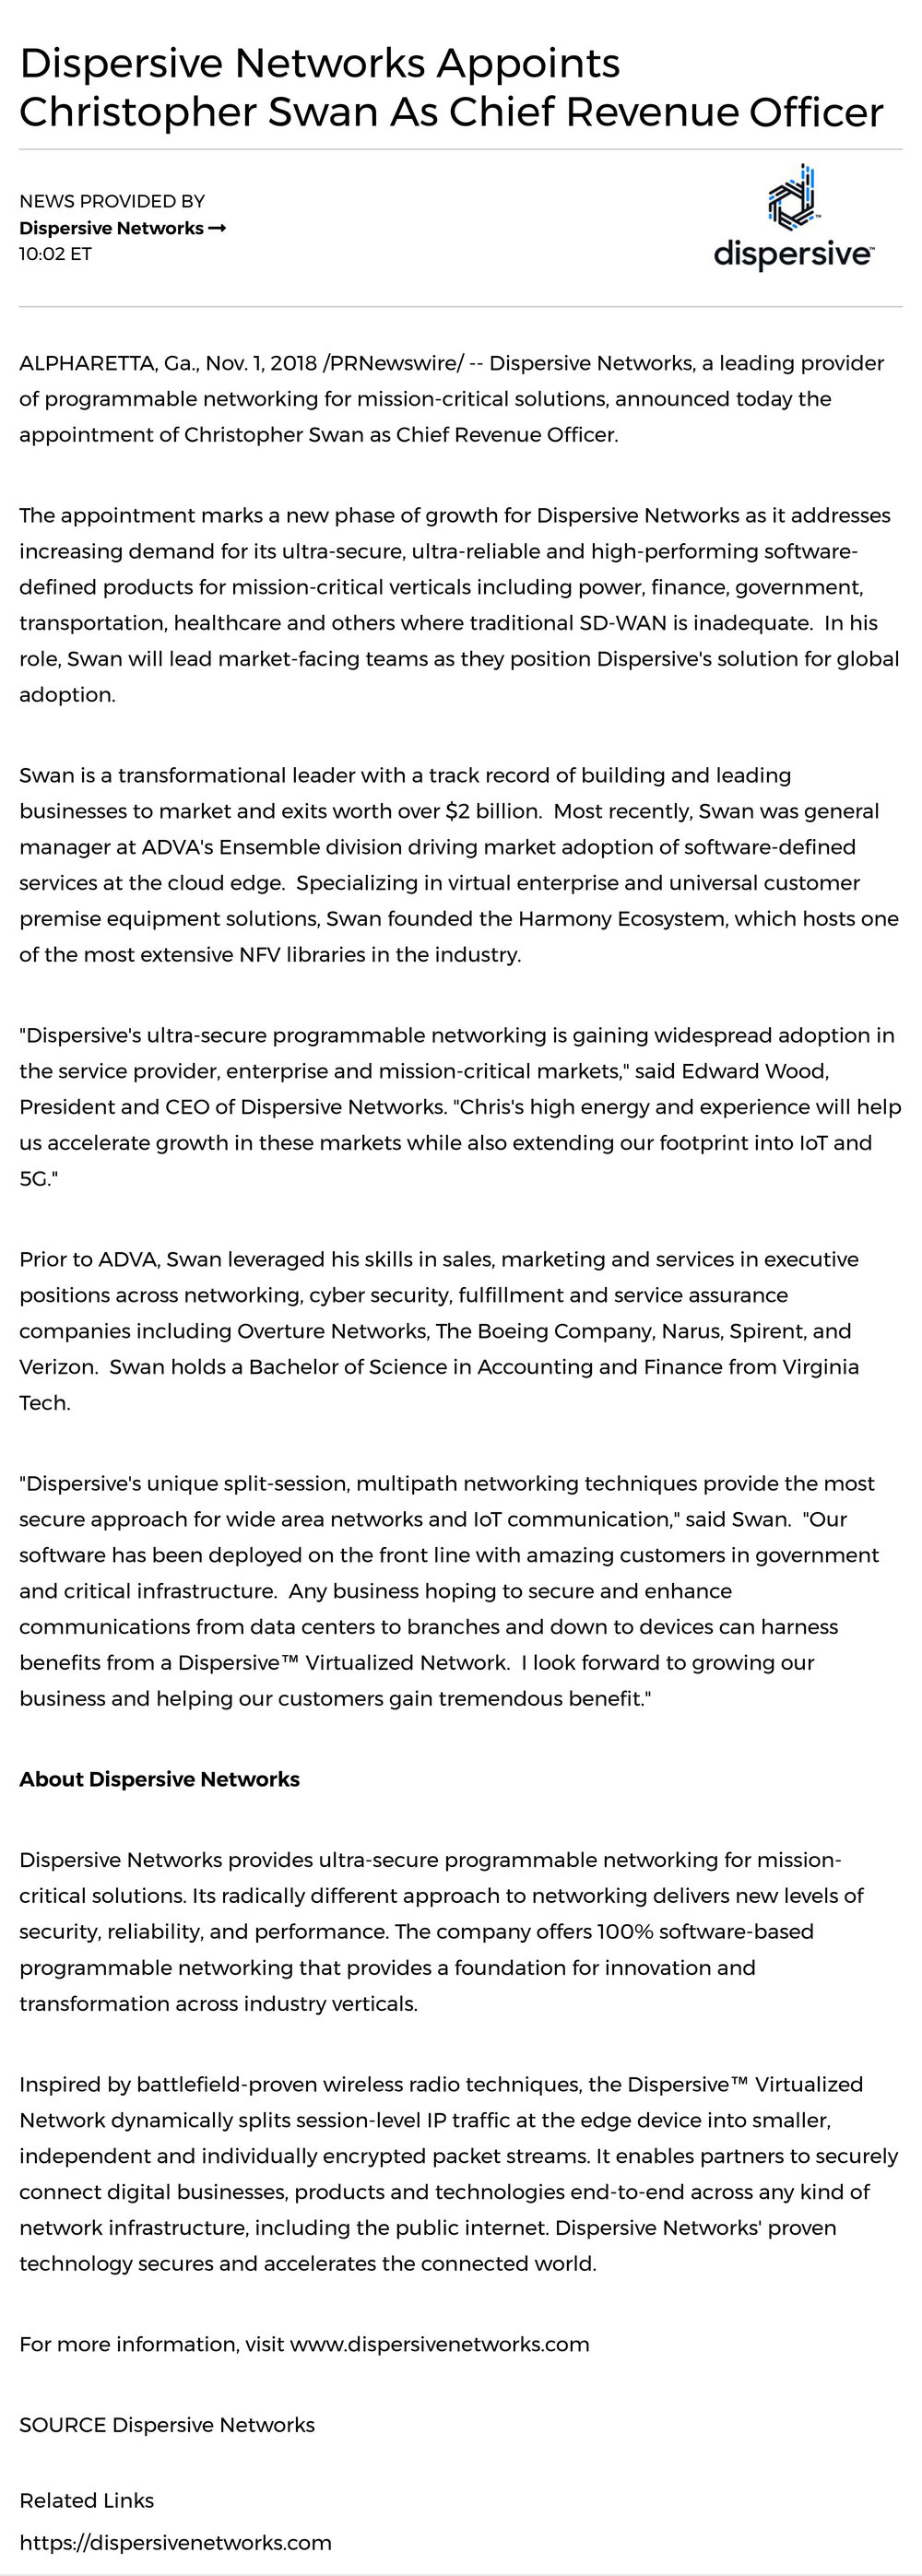 Dispersive Networks Appoints Christopher Swan As Chief Revenue Officer.jpg